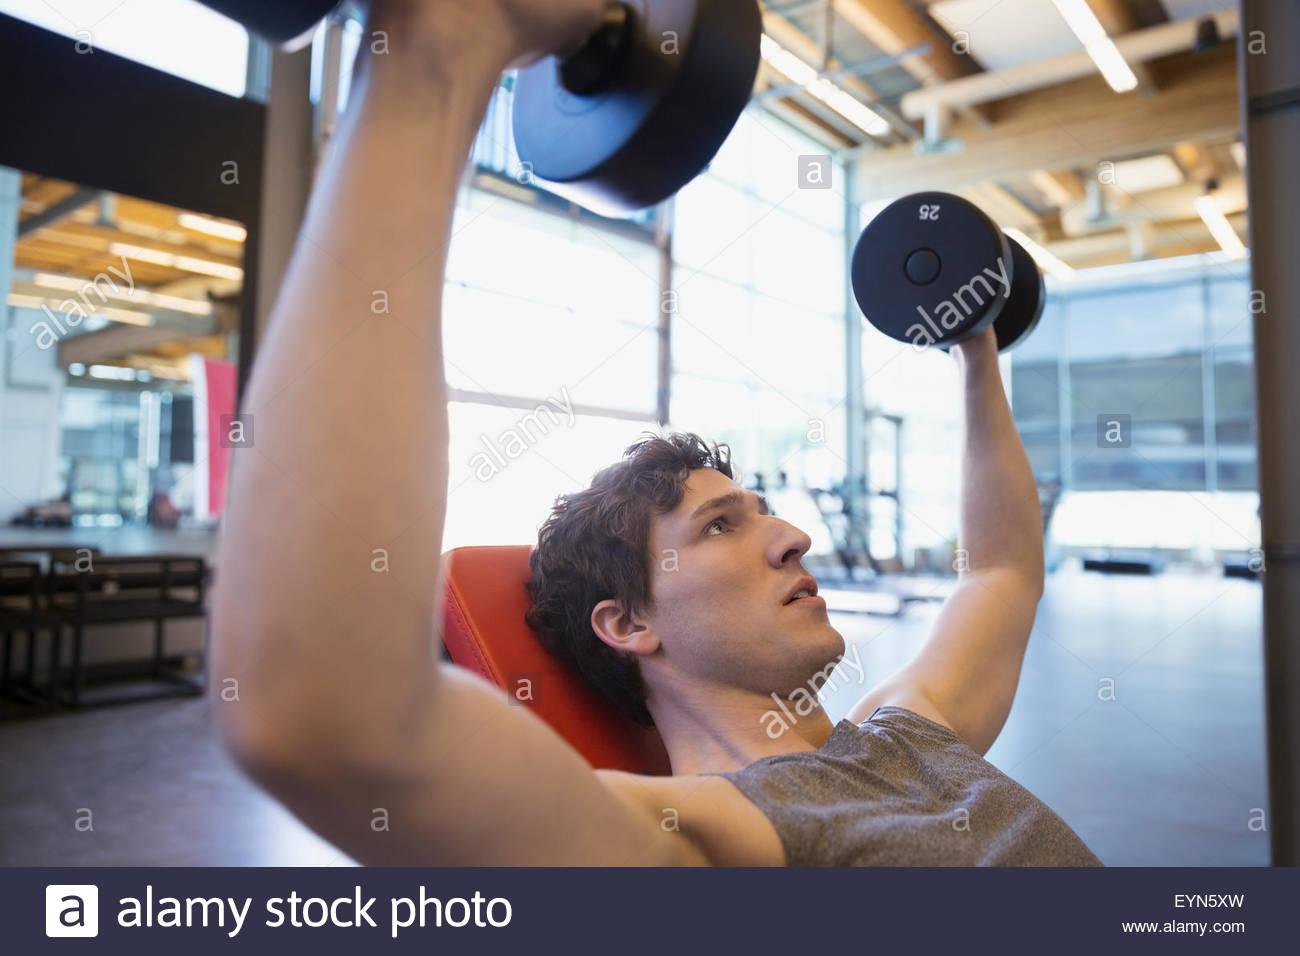 Man doing incline dumbbell chest press at gym - Stock Image